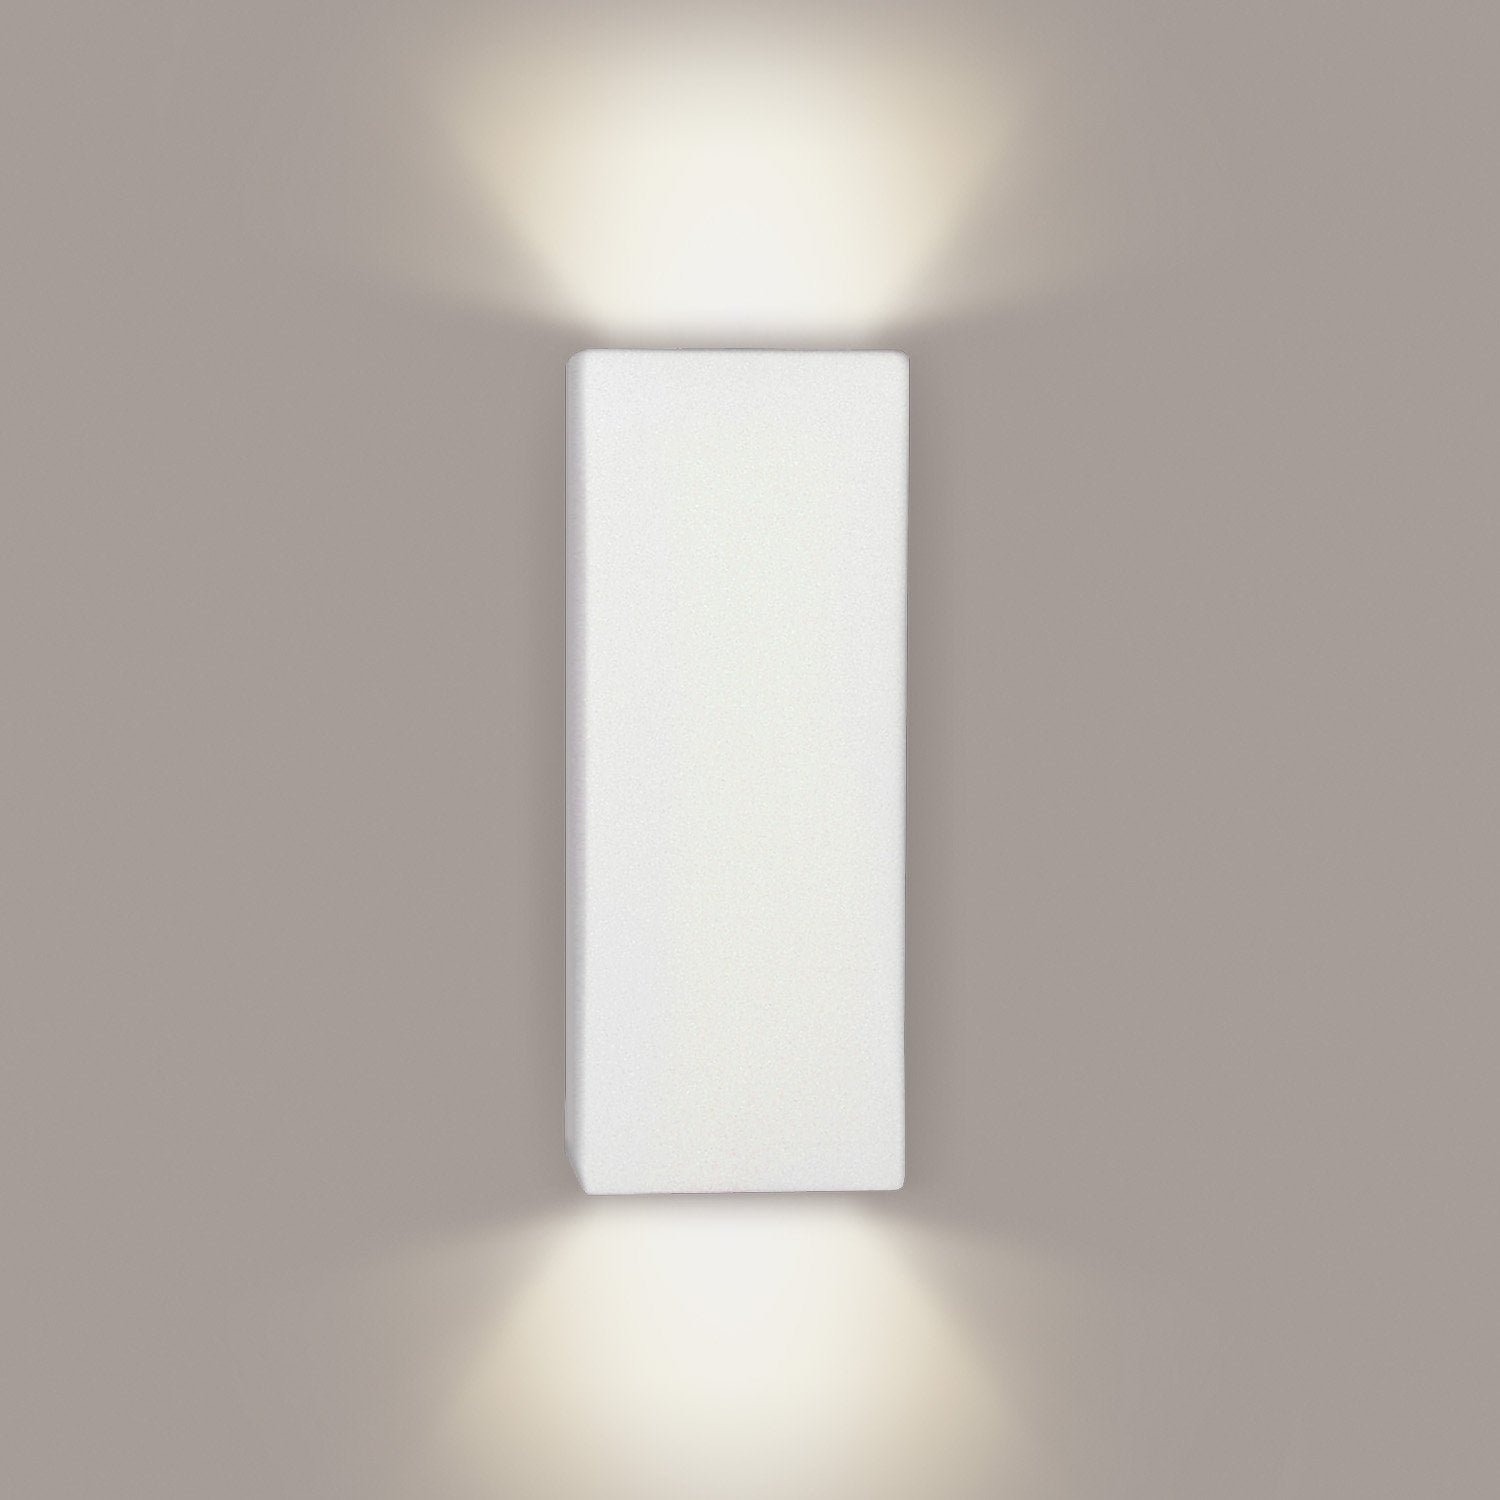 A19 1803-GU24-A21 Islands of Light Collection Flores Dusty Teal Finish Wall Sconce from A19